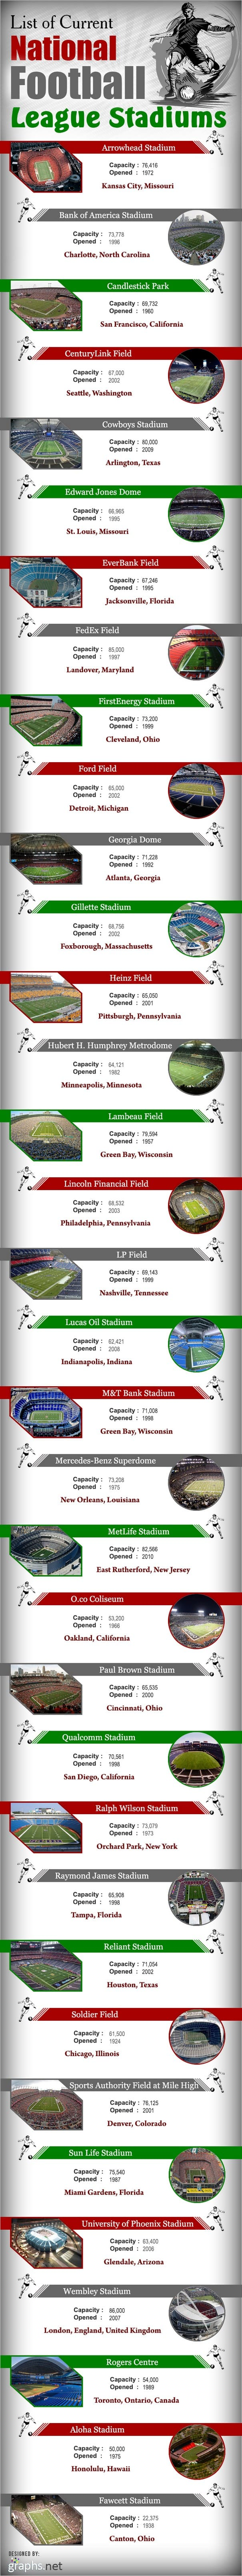 List of Current National Football League Stadiums Infographic